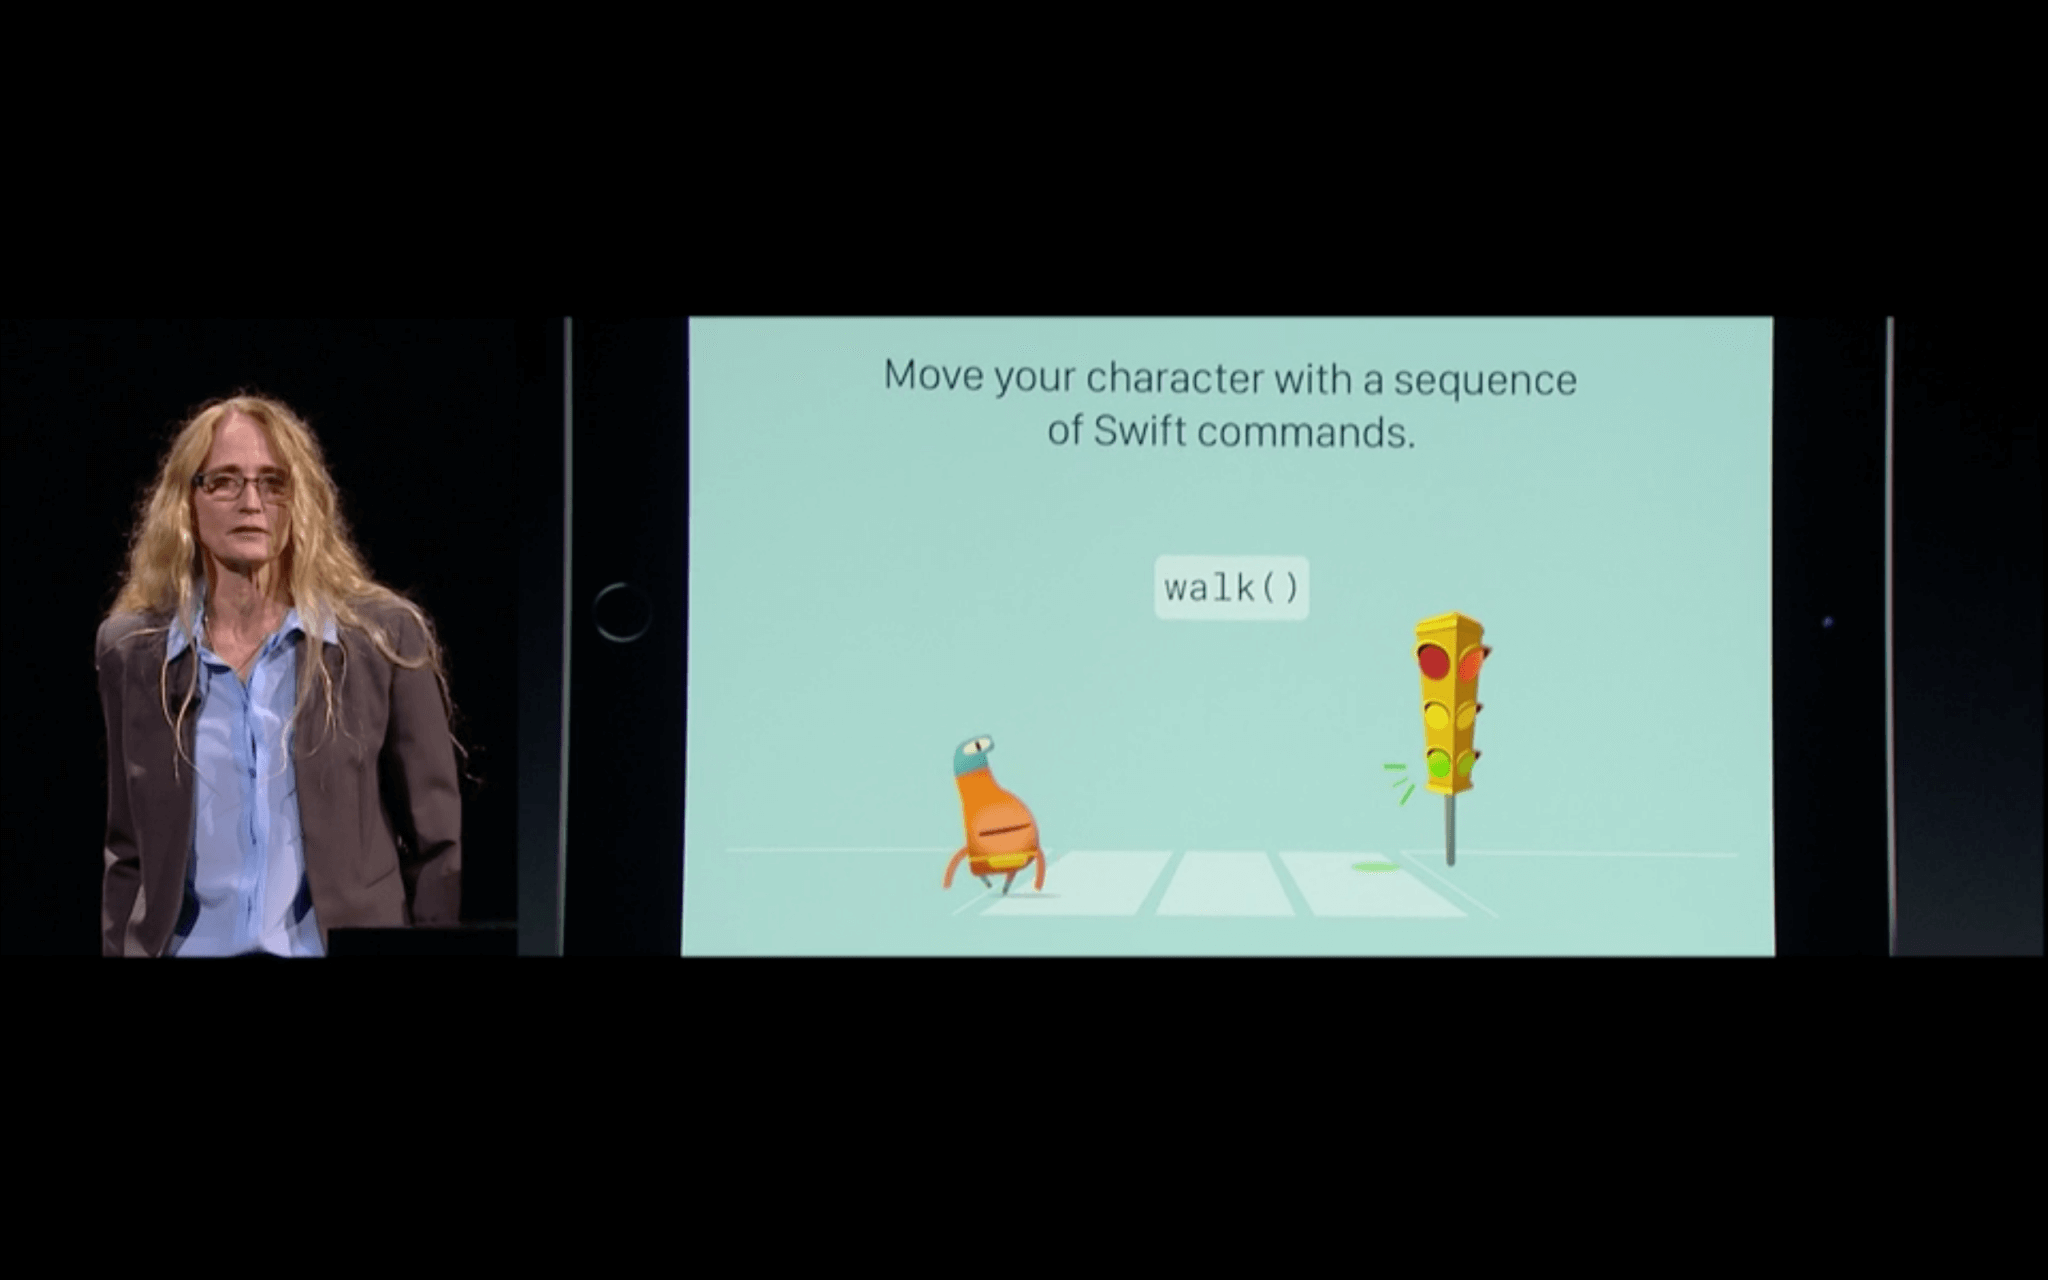 WWDC: Swift Playground kommt kinngerecht daher (Screenshot von Apples Livestream)